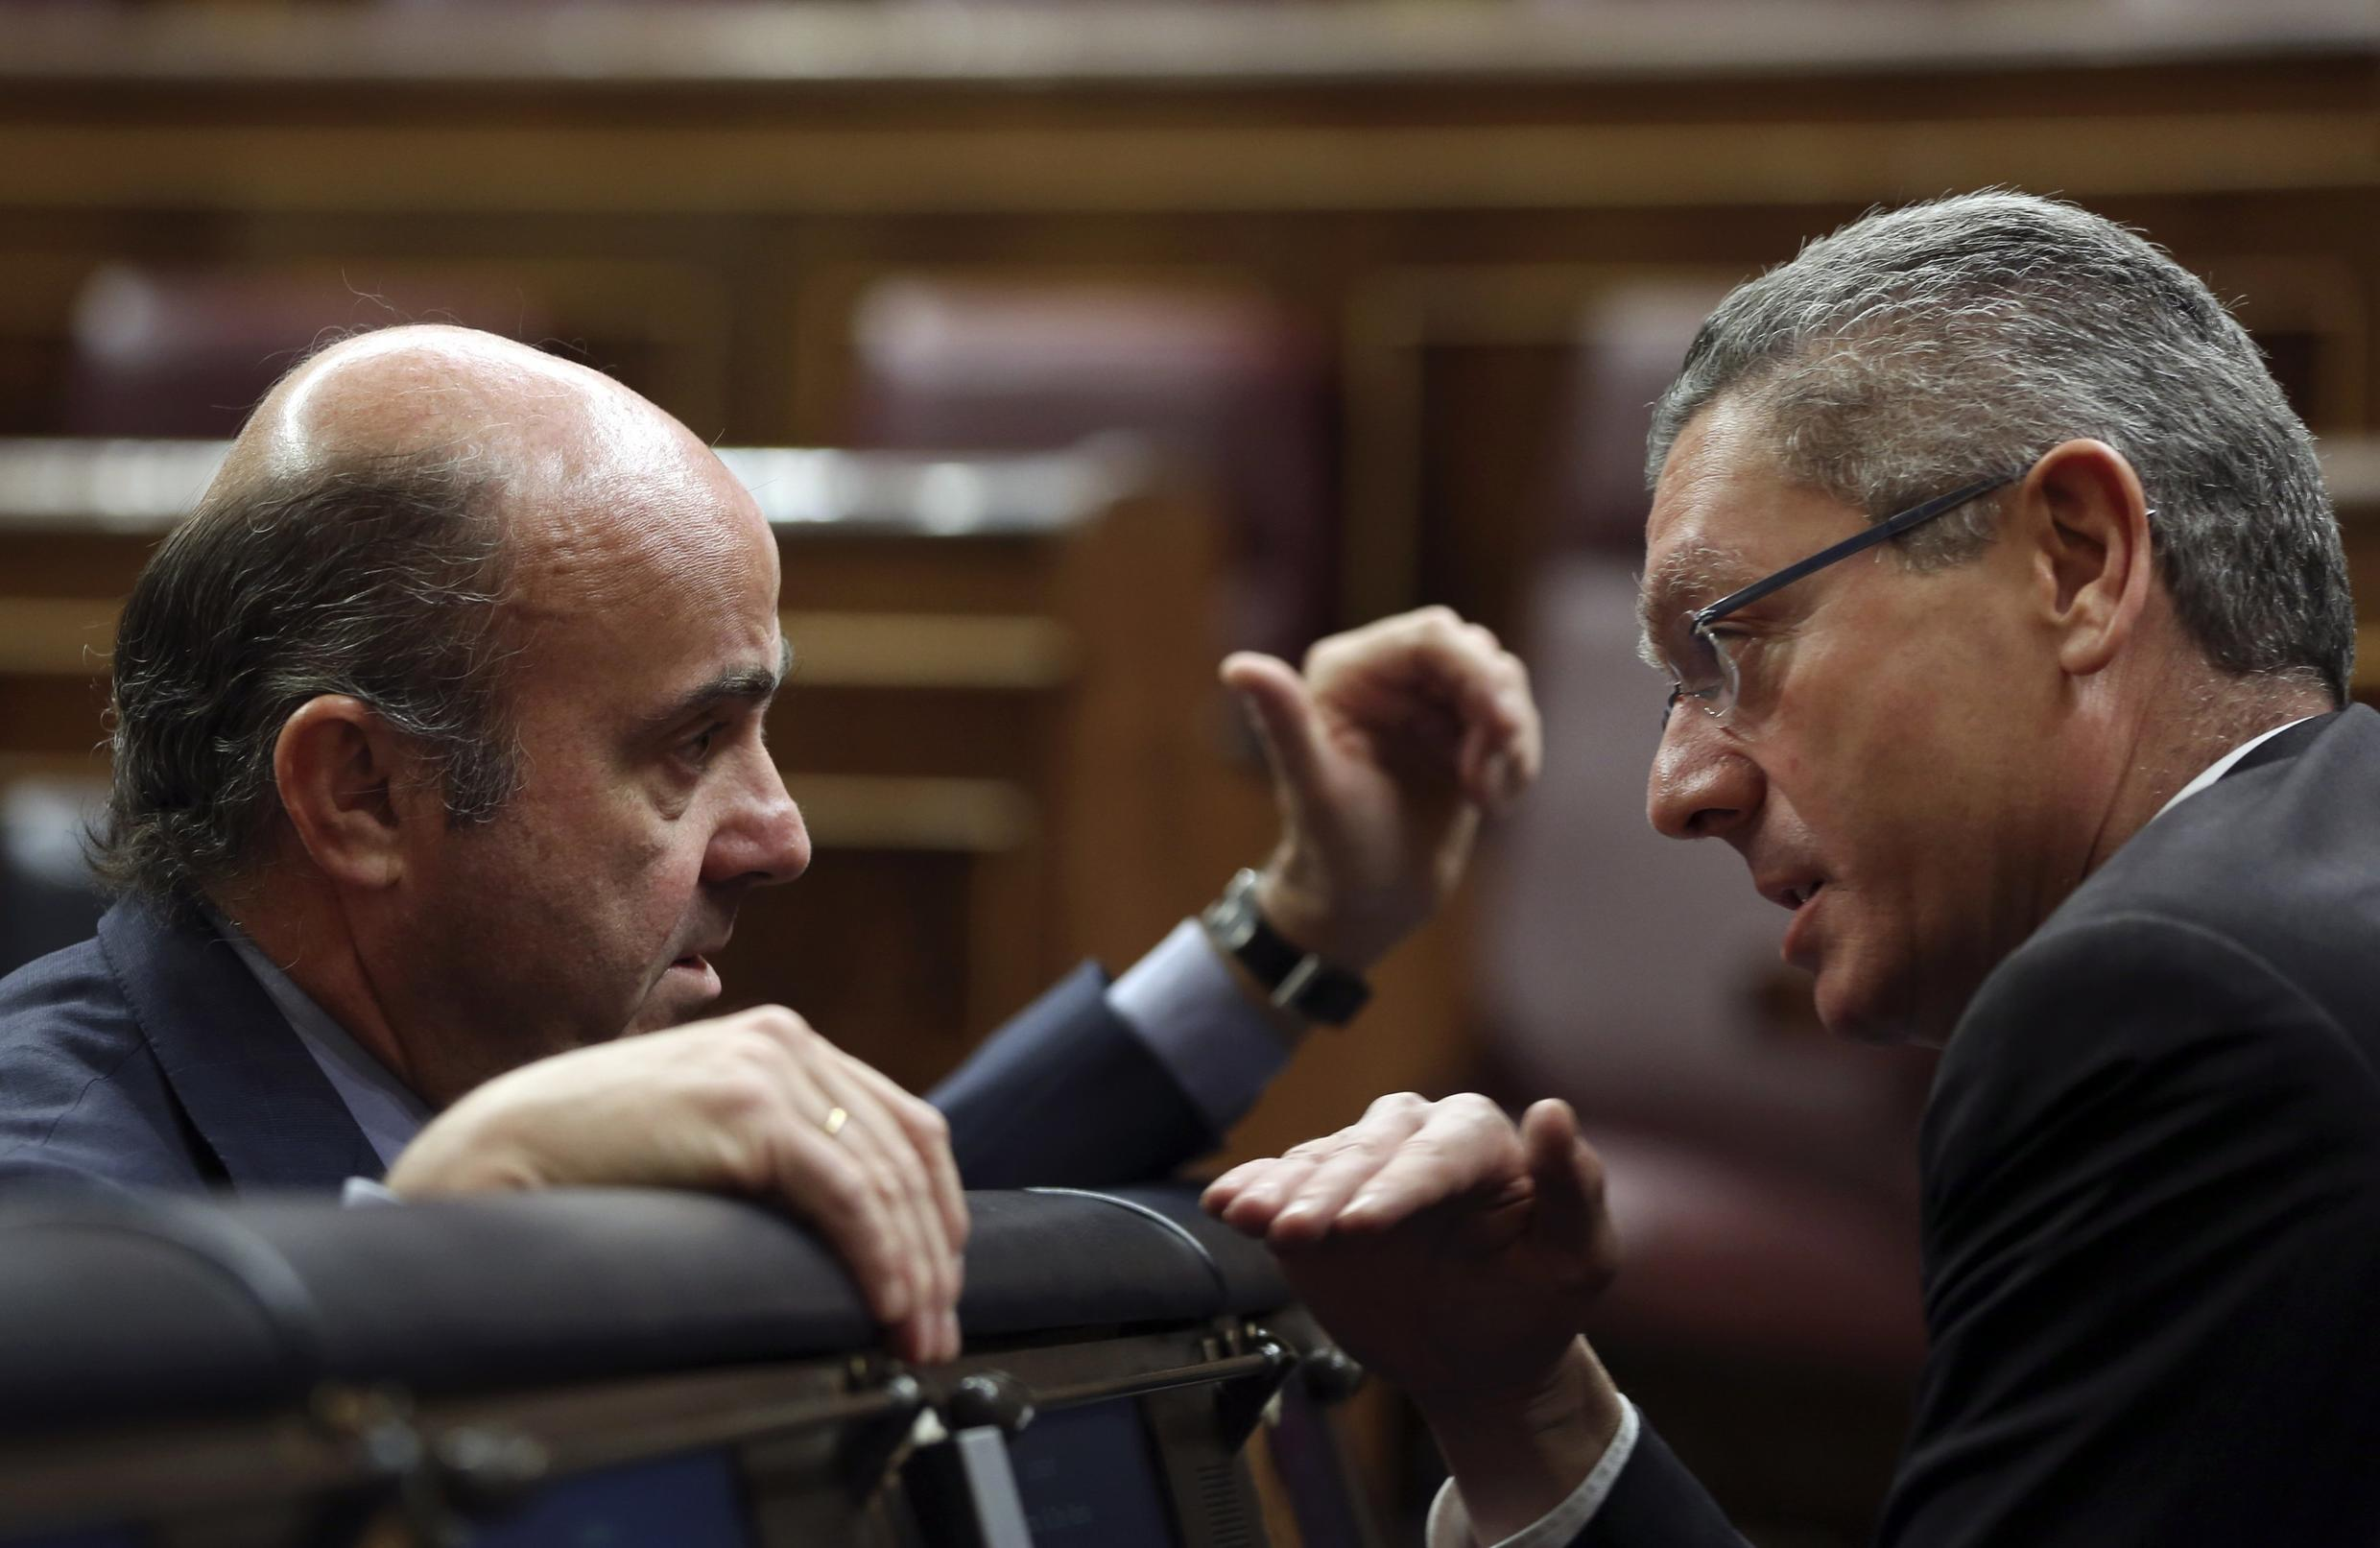 Spain's Economy Minister Luis de Guindos talks to Justice Minister Alberto Ruiz-Gallardon before the start of the 2014 budget debate at Parliament in Madrid